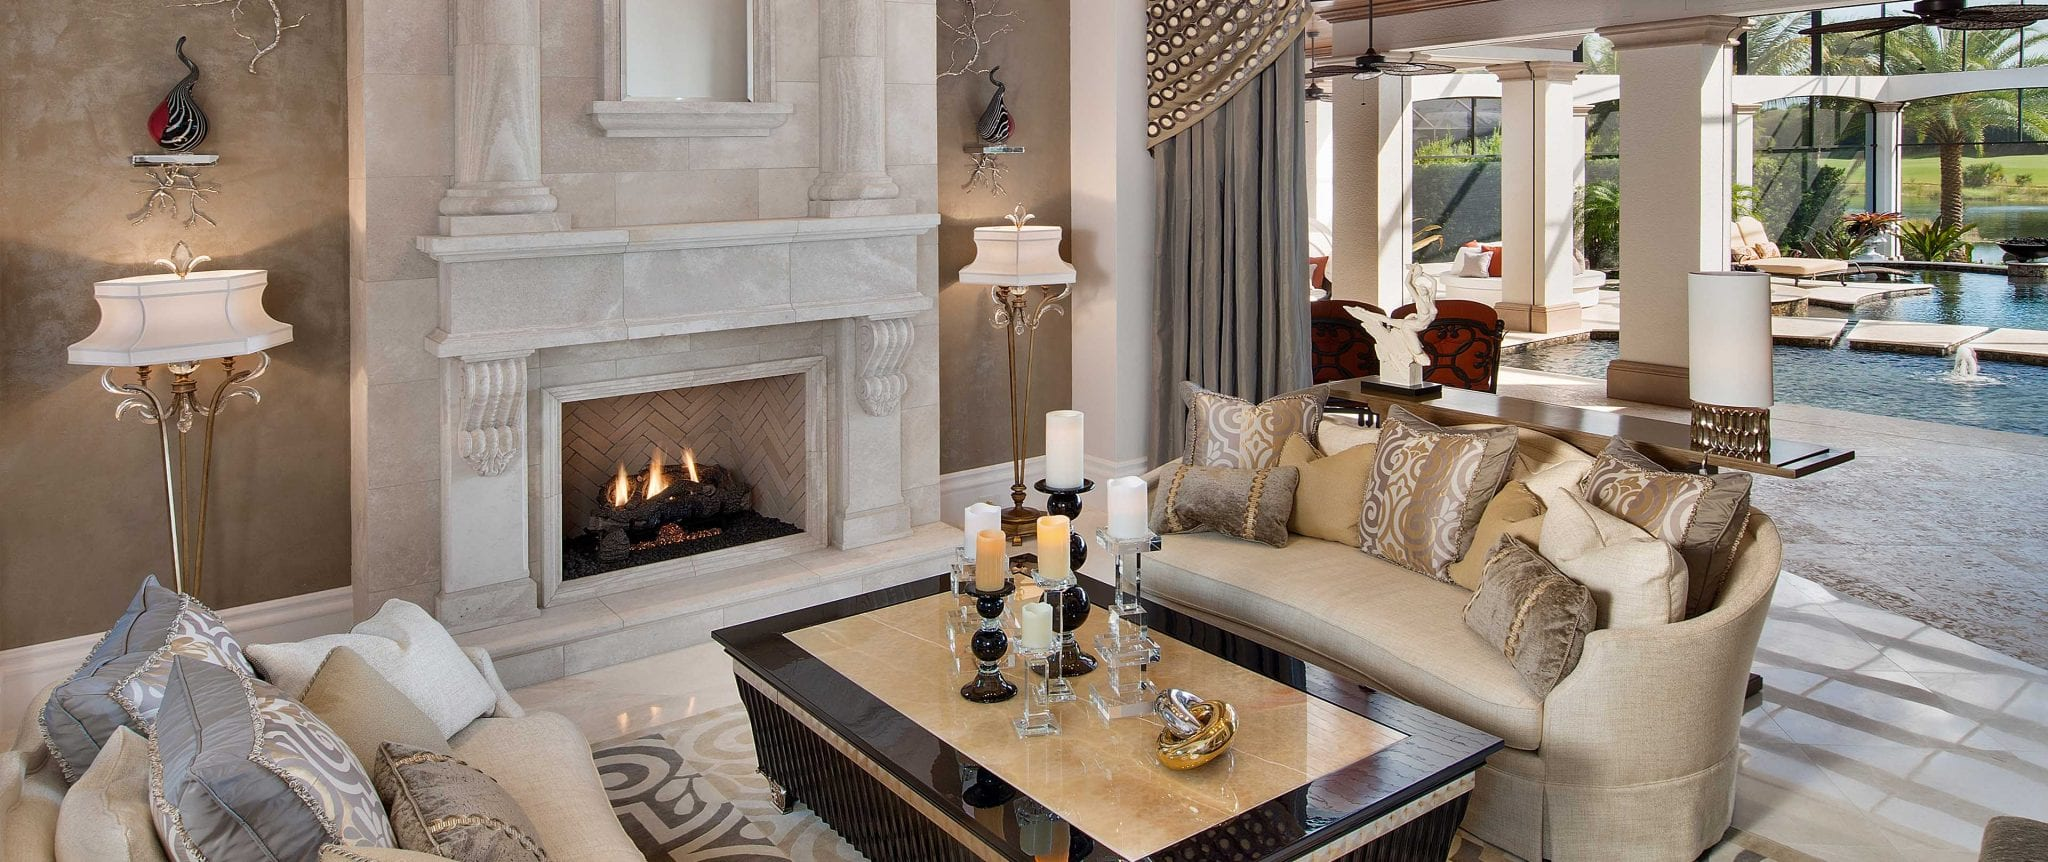 Residential Interior Design - Vogue Interiors